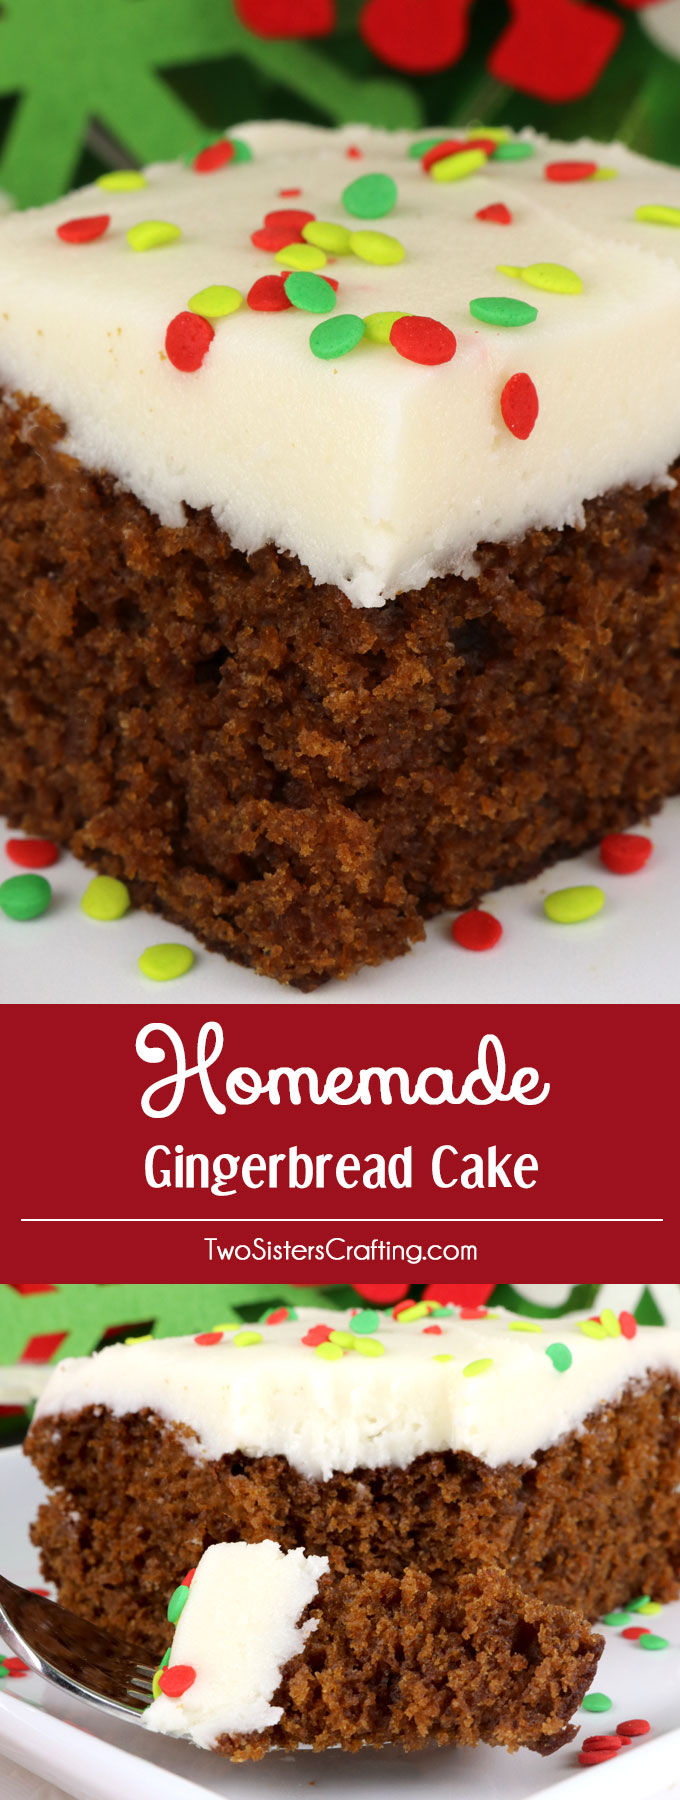 homemade gingerbread cake a classic christmas cake recipe topped with our super delicious best cream